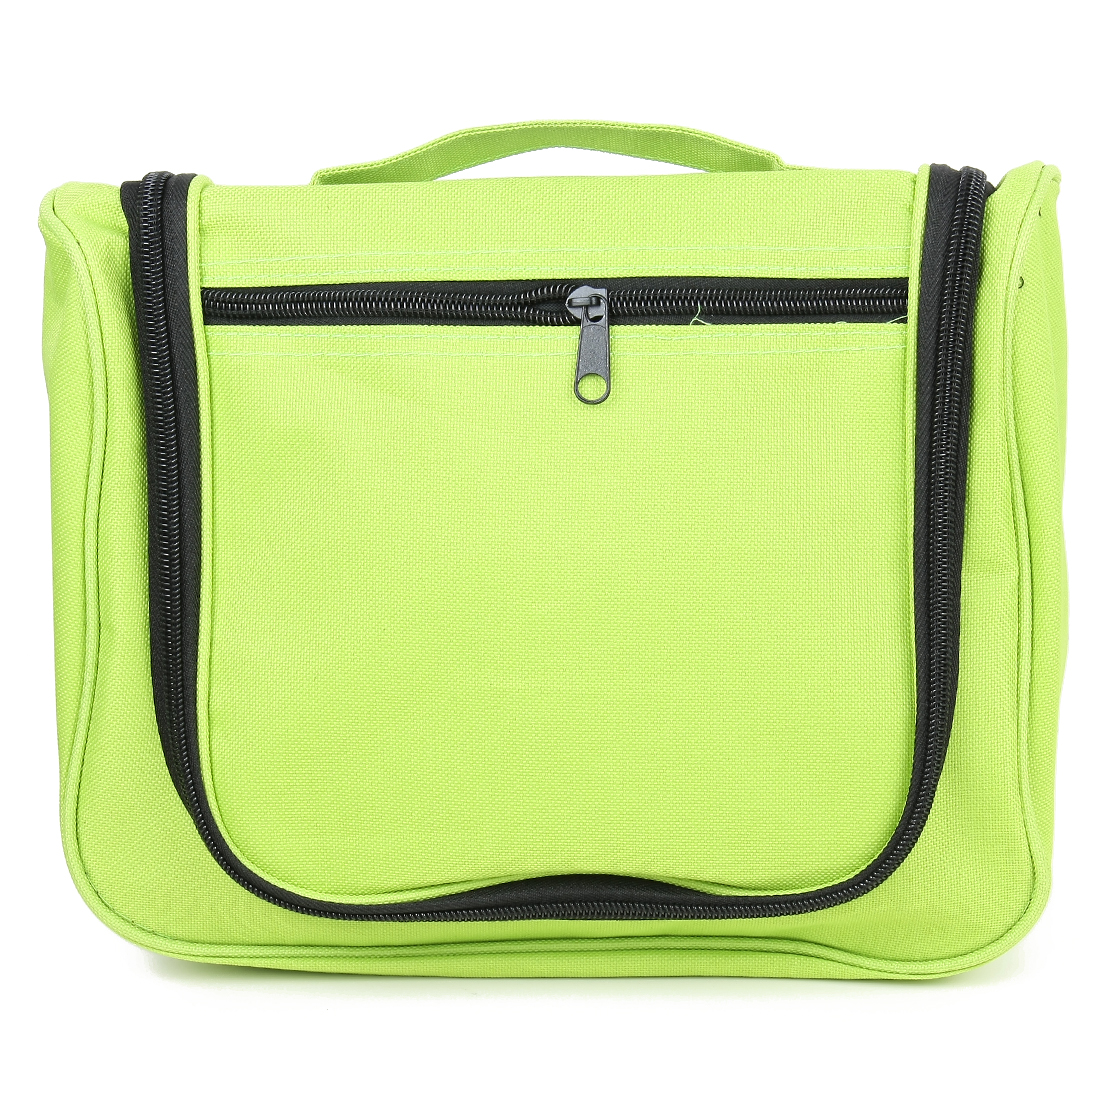 Nylon Zip up Travel Makeup Carrying Bags Organizer Outdoor Wash Bag